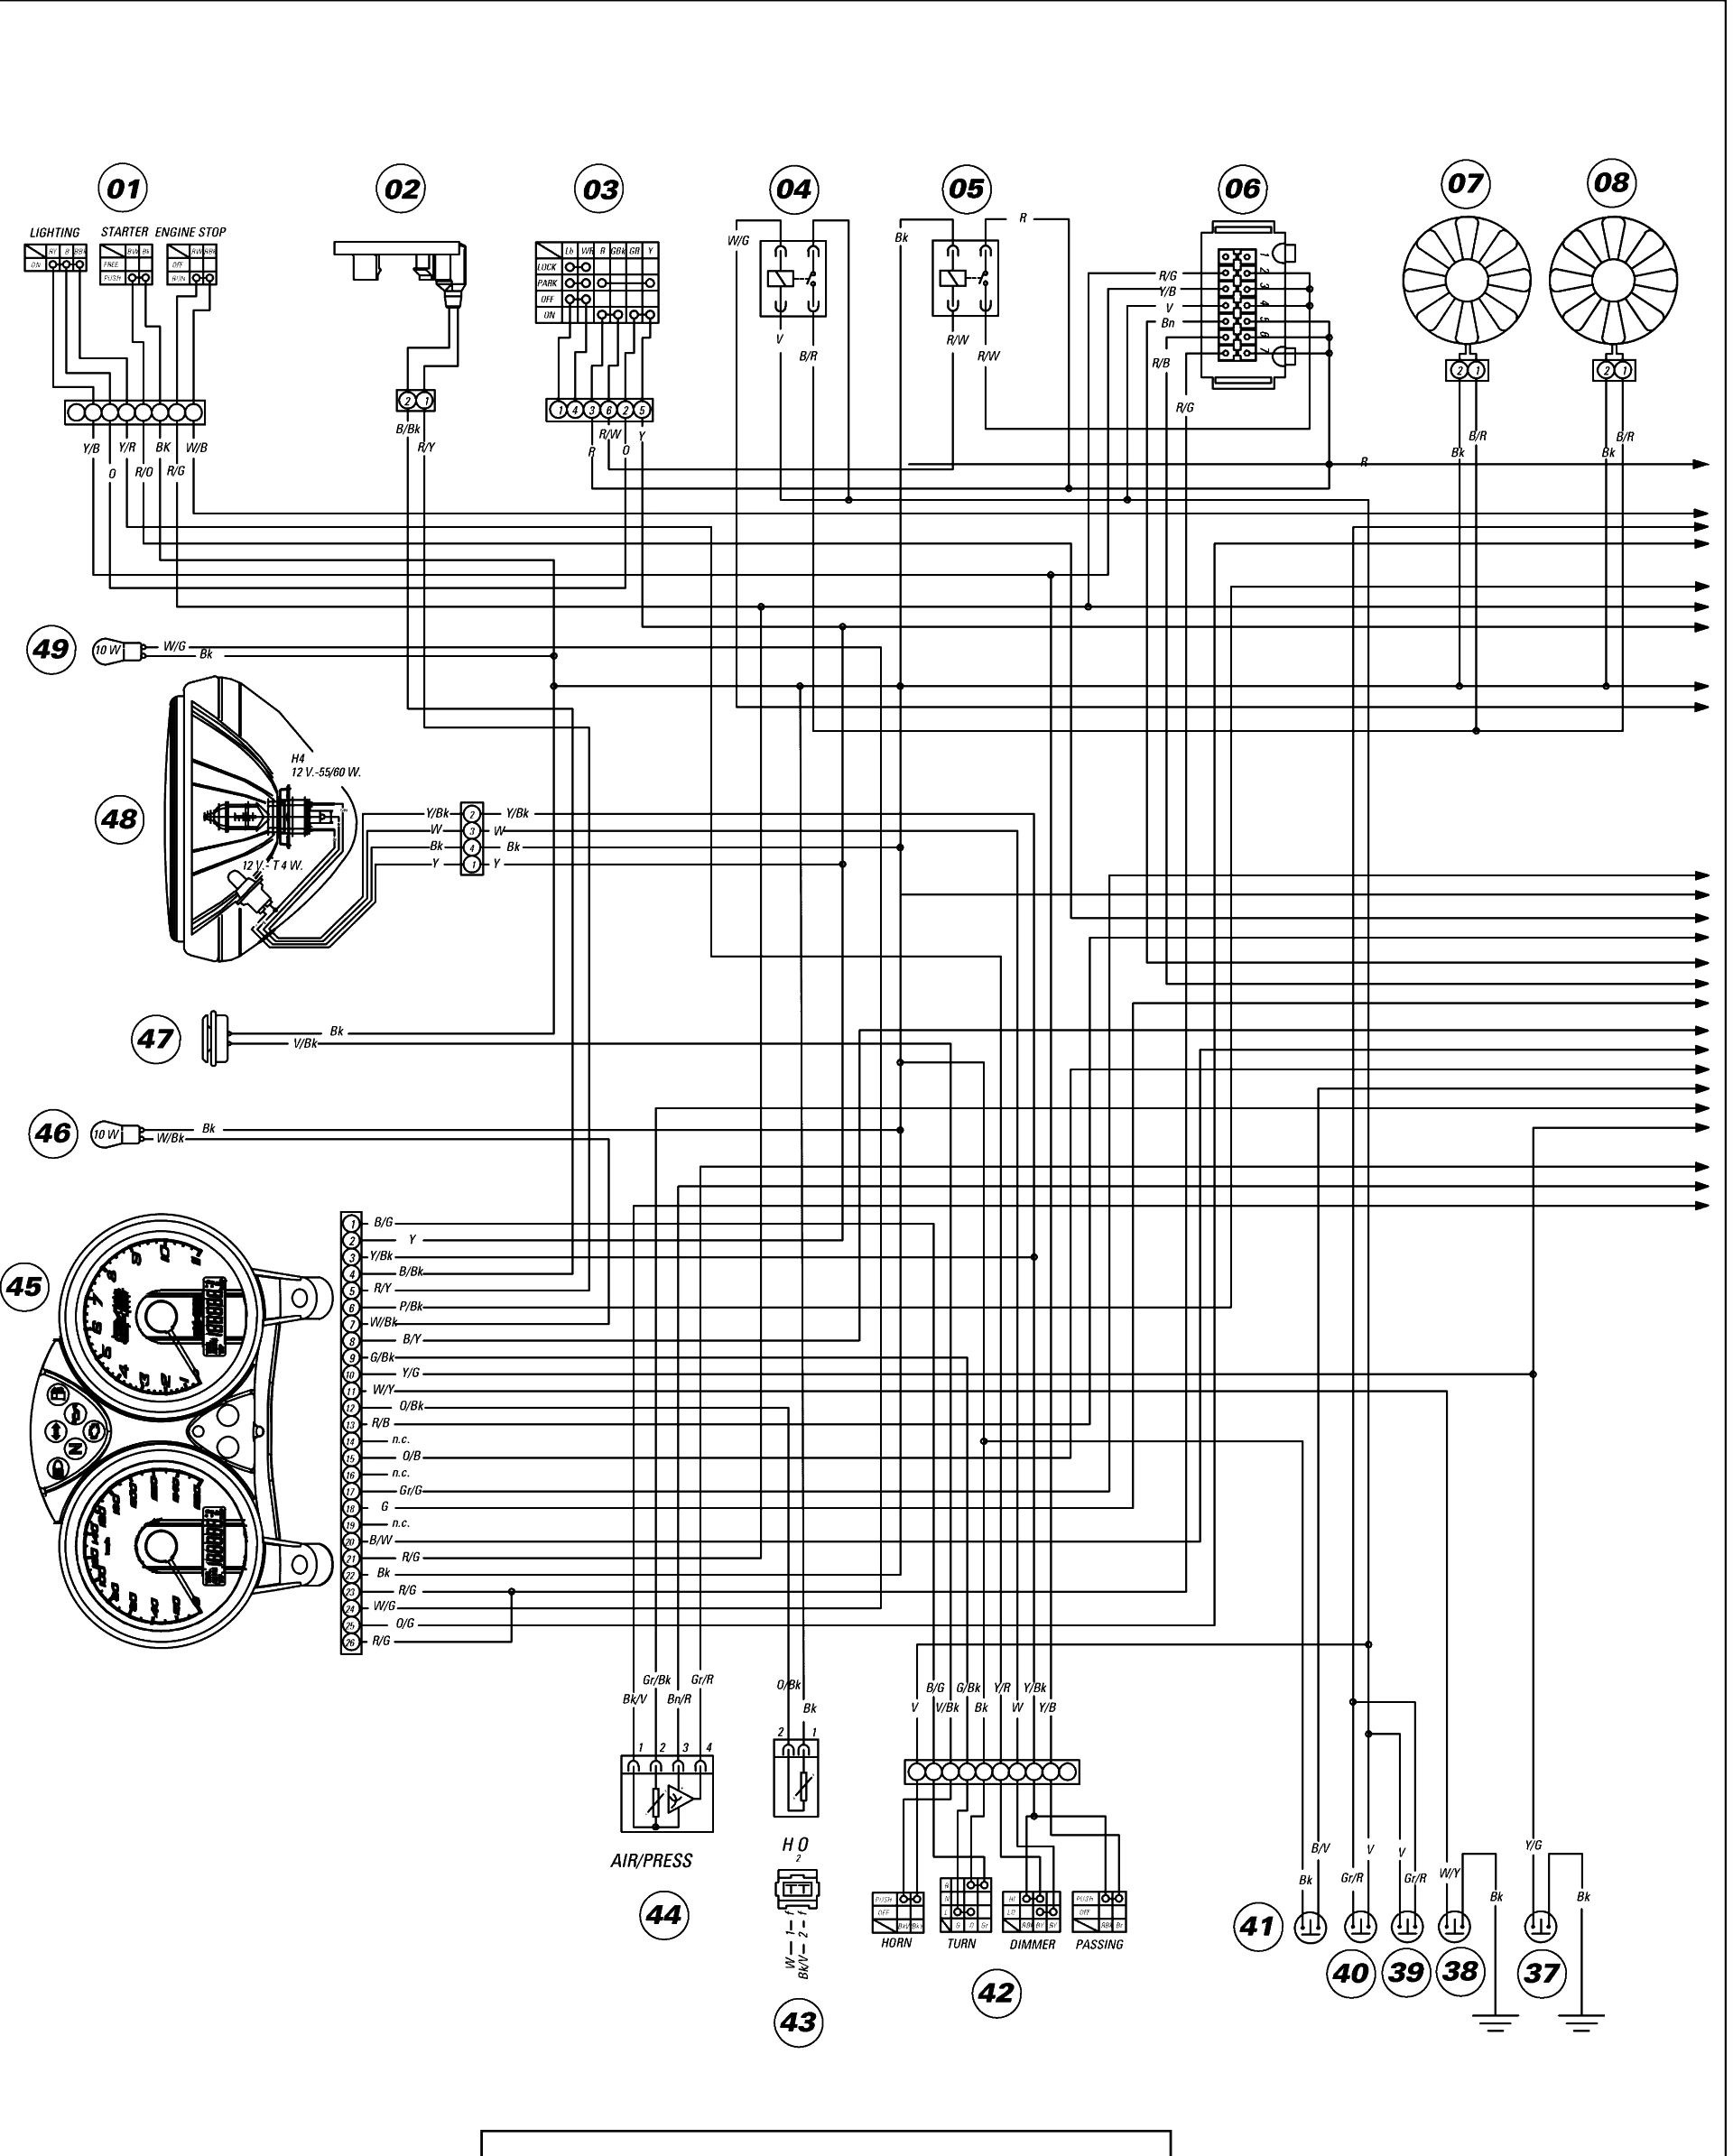 Ducati 999 Wiring Diagram Schematic Wiring Diagram